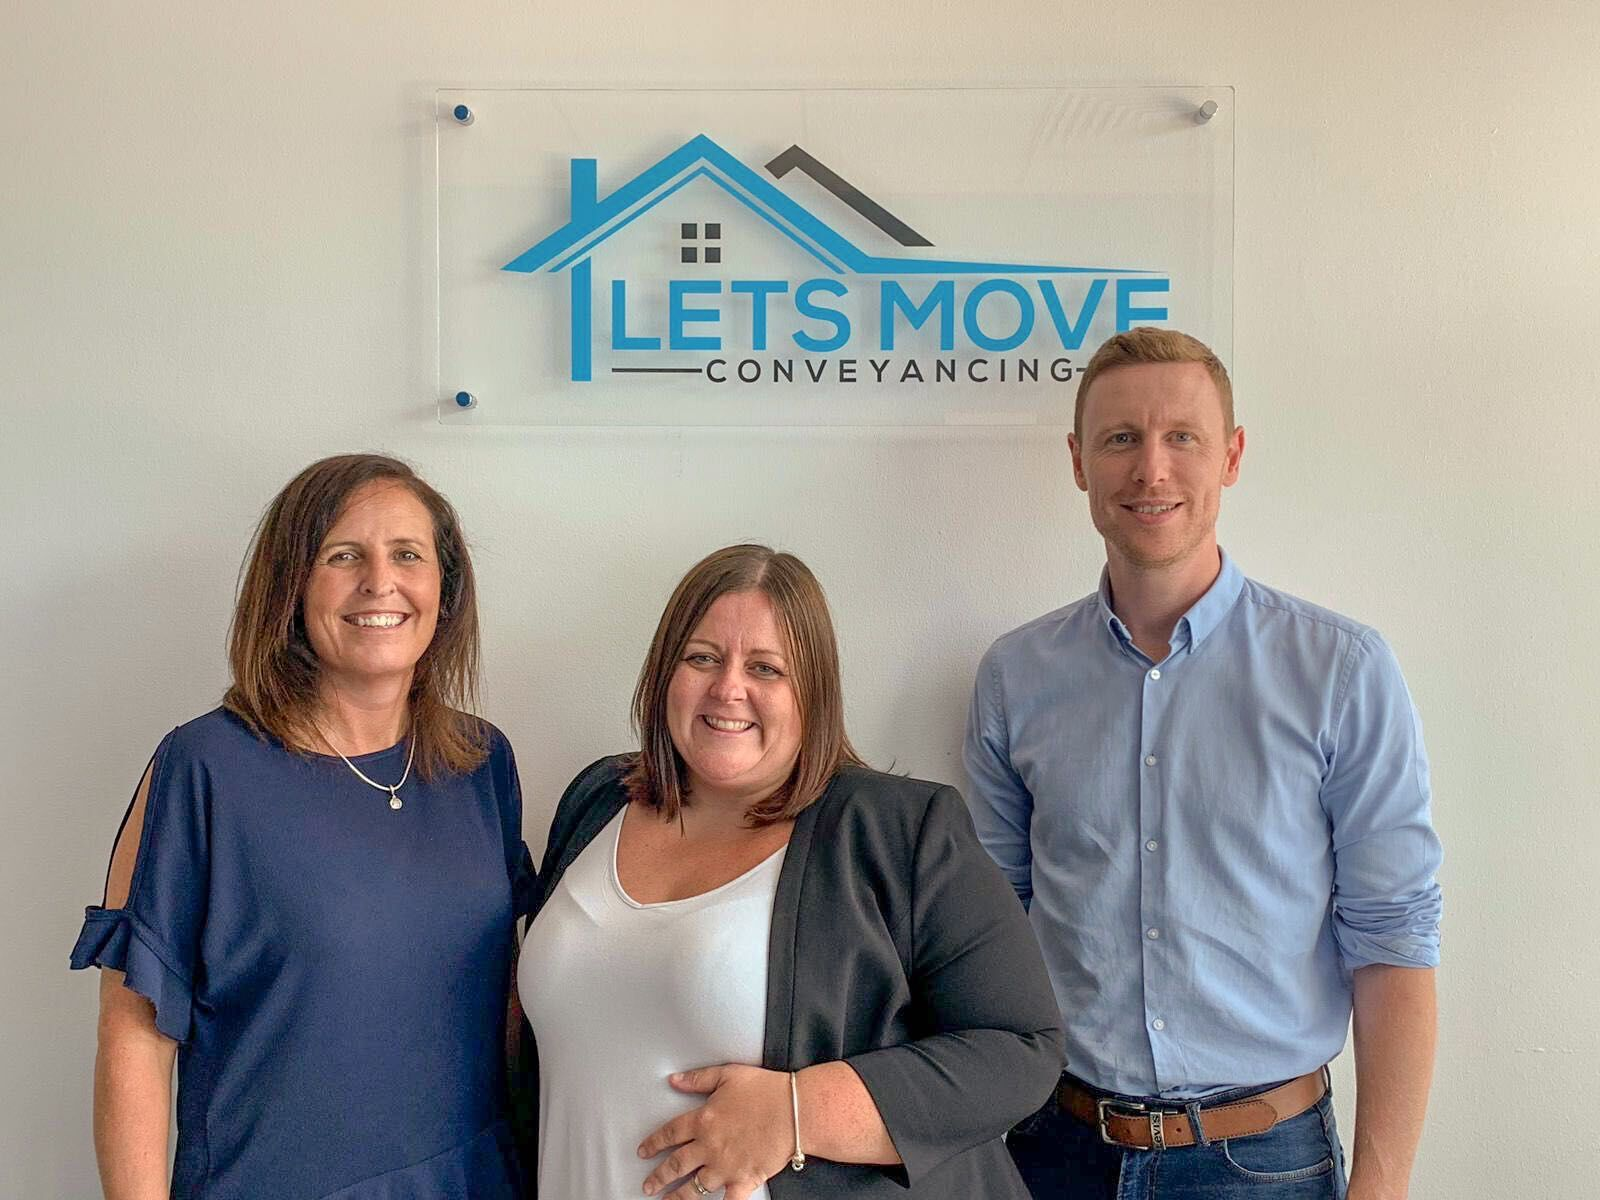 Three of Yorkshire's most experienced conveyancers open new Leeds-based firm